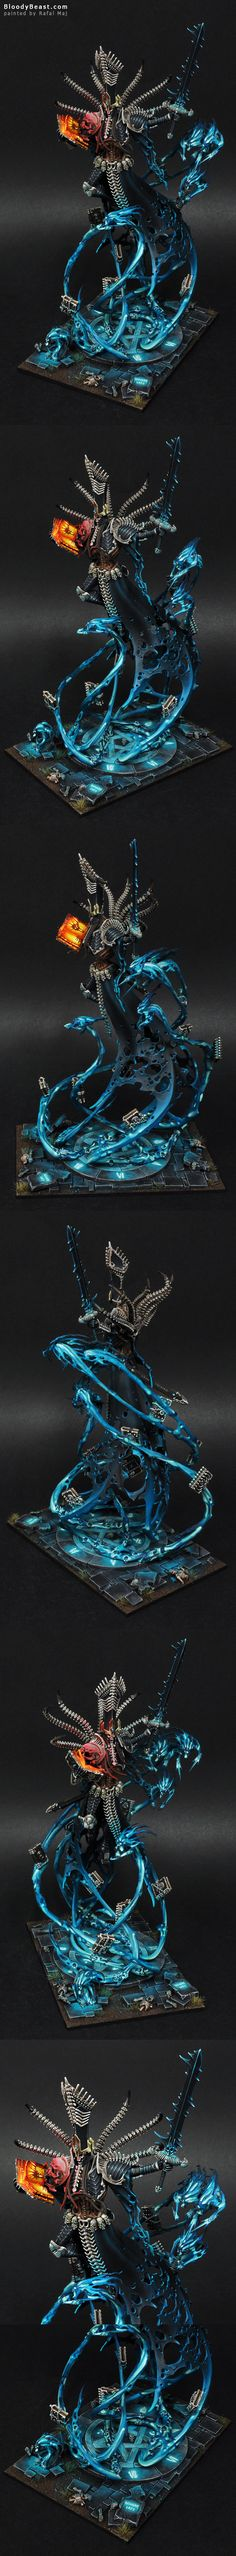 Nagash, Supreme Lord of the Undead painted by Rafal Maj (BloodyBeast.com)